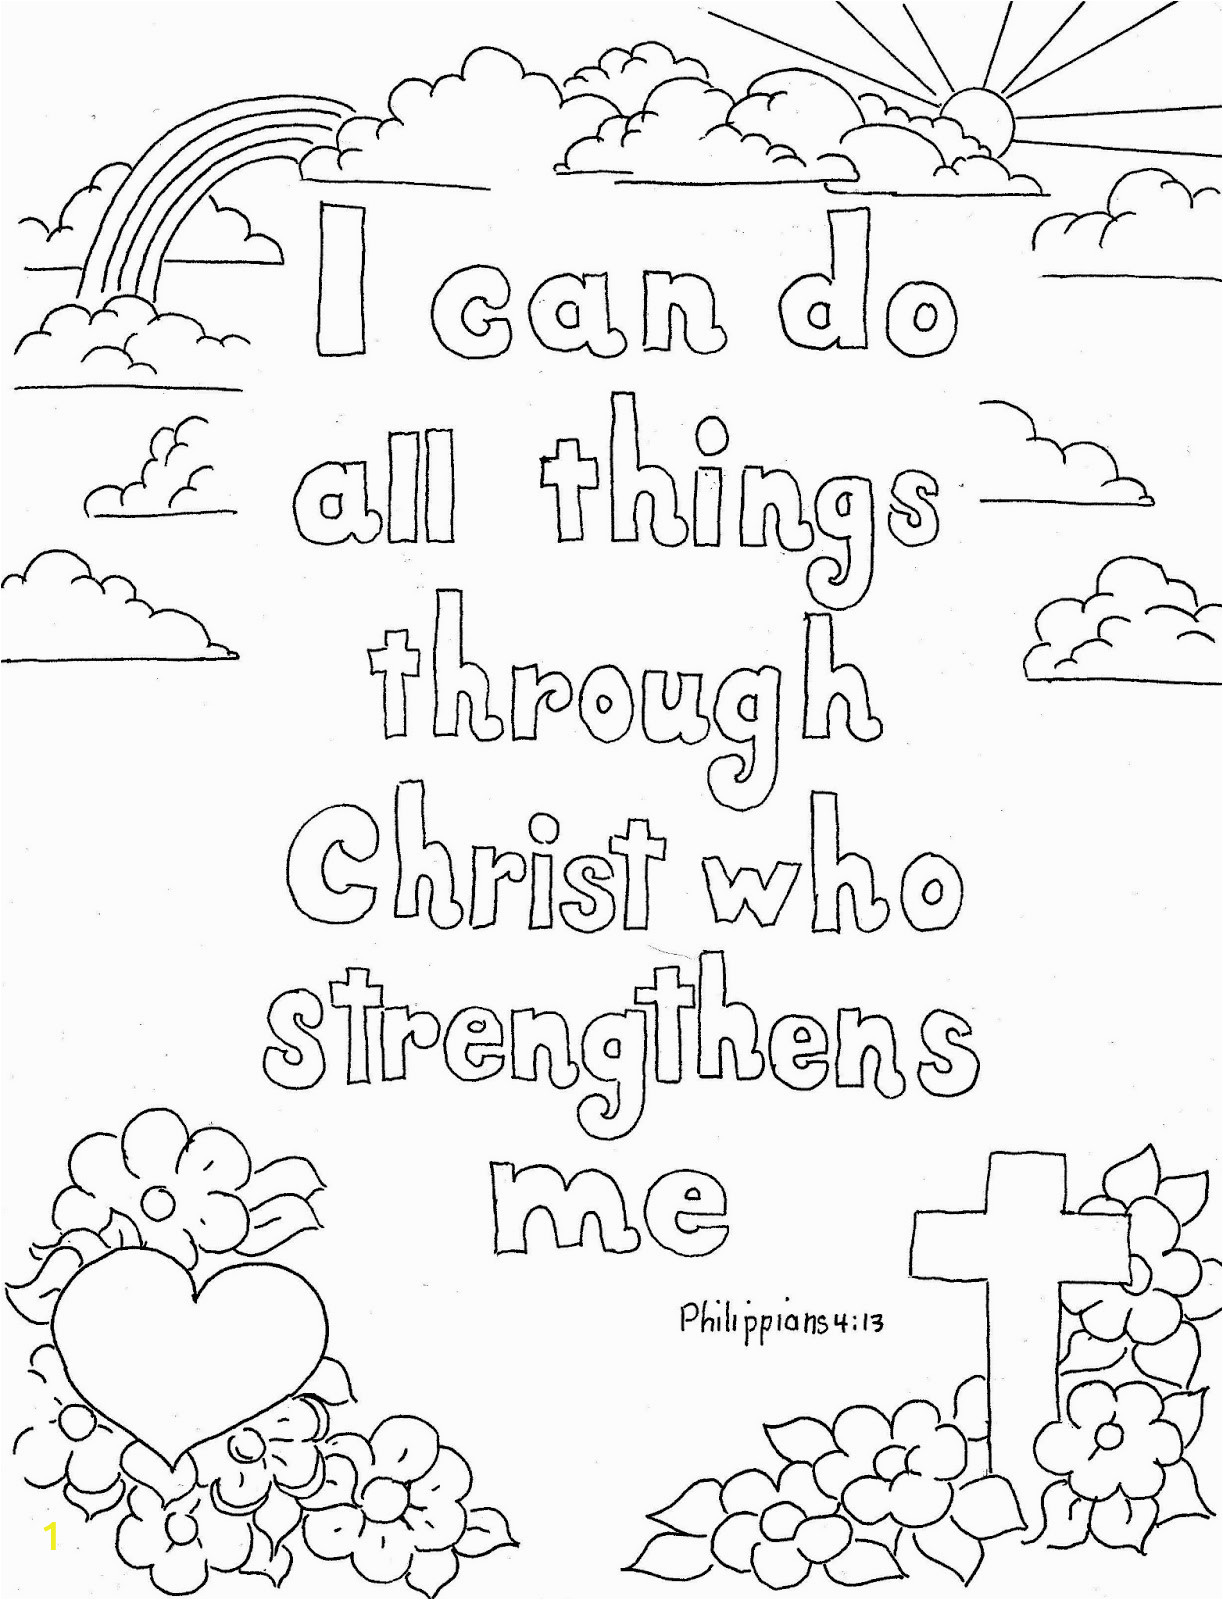 philippians 413 print and color page